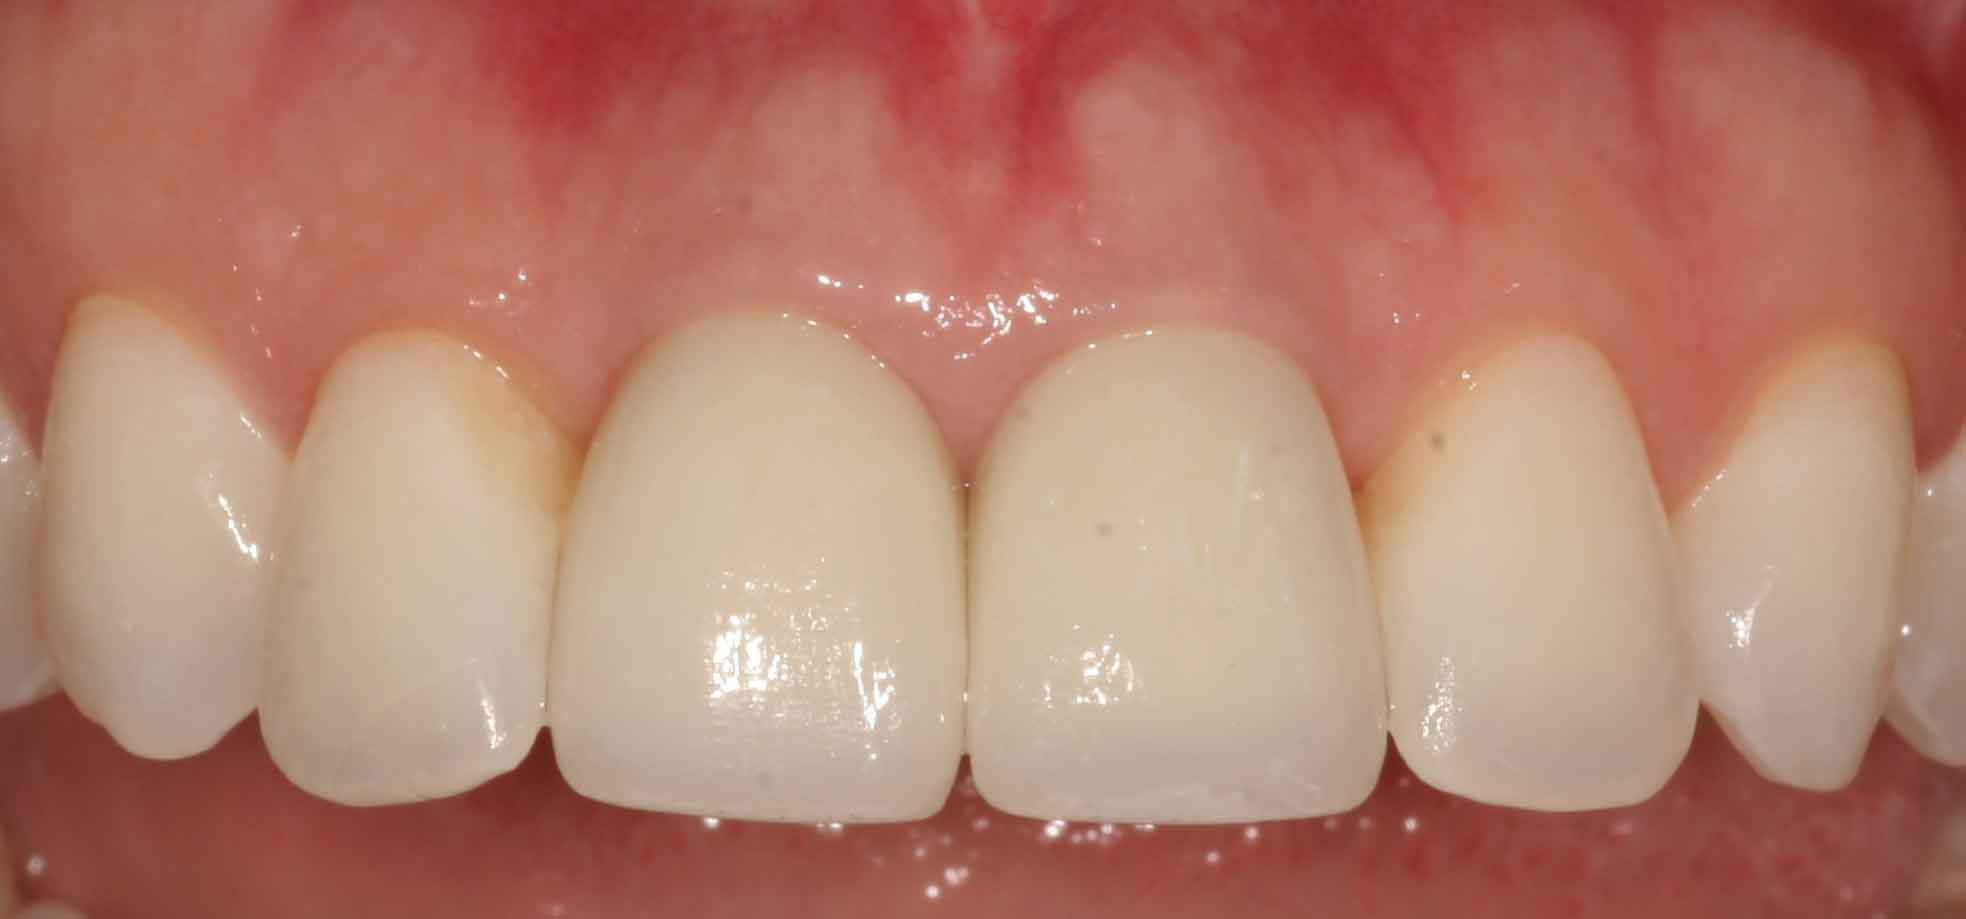 Pittsburgh Pittsburgh periodontist picture after crown lengthening